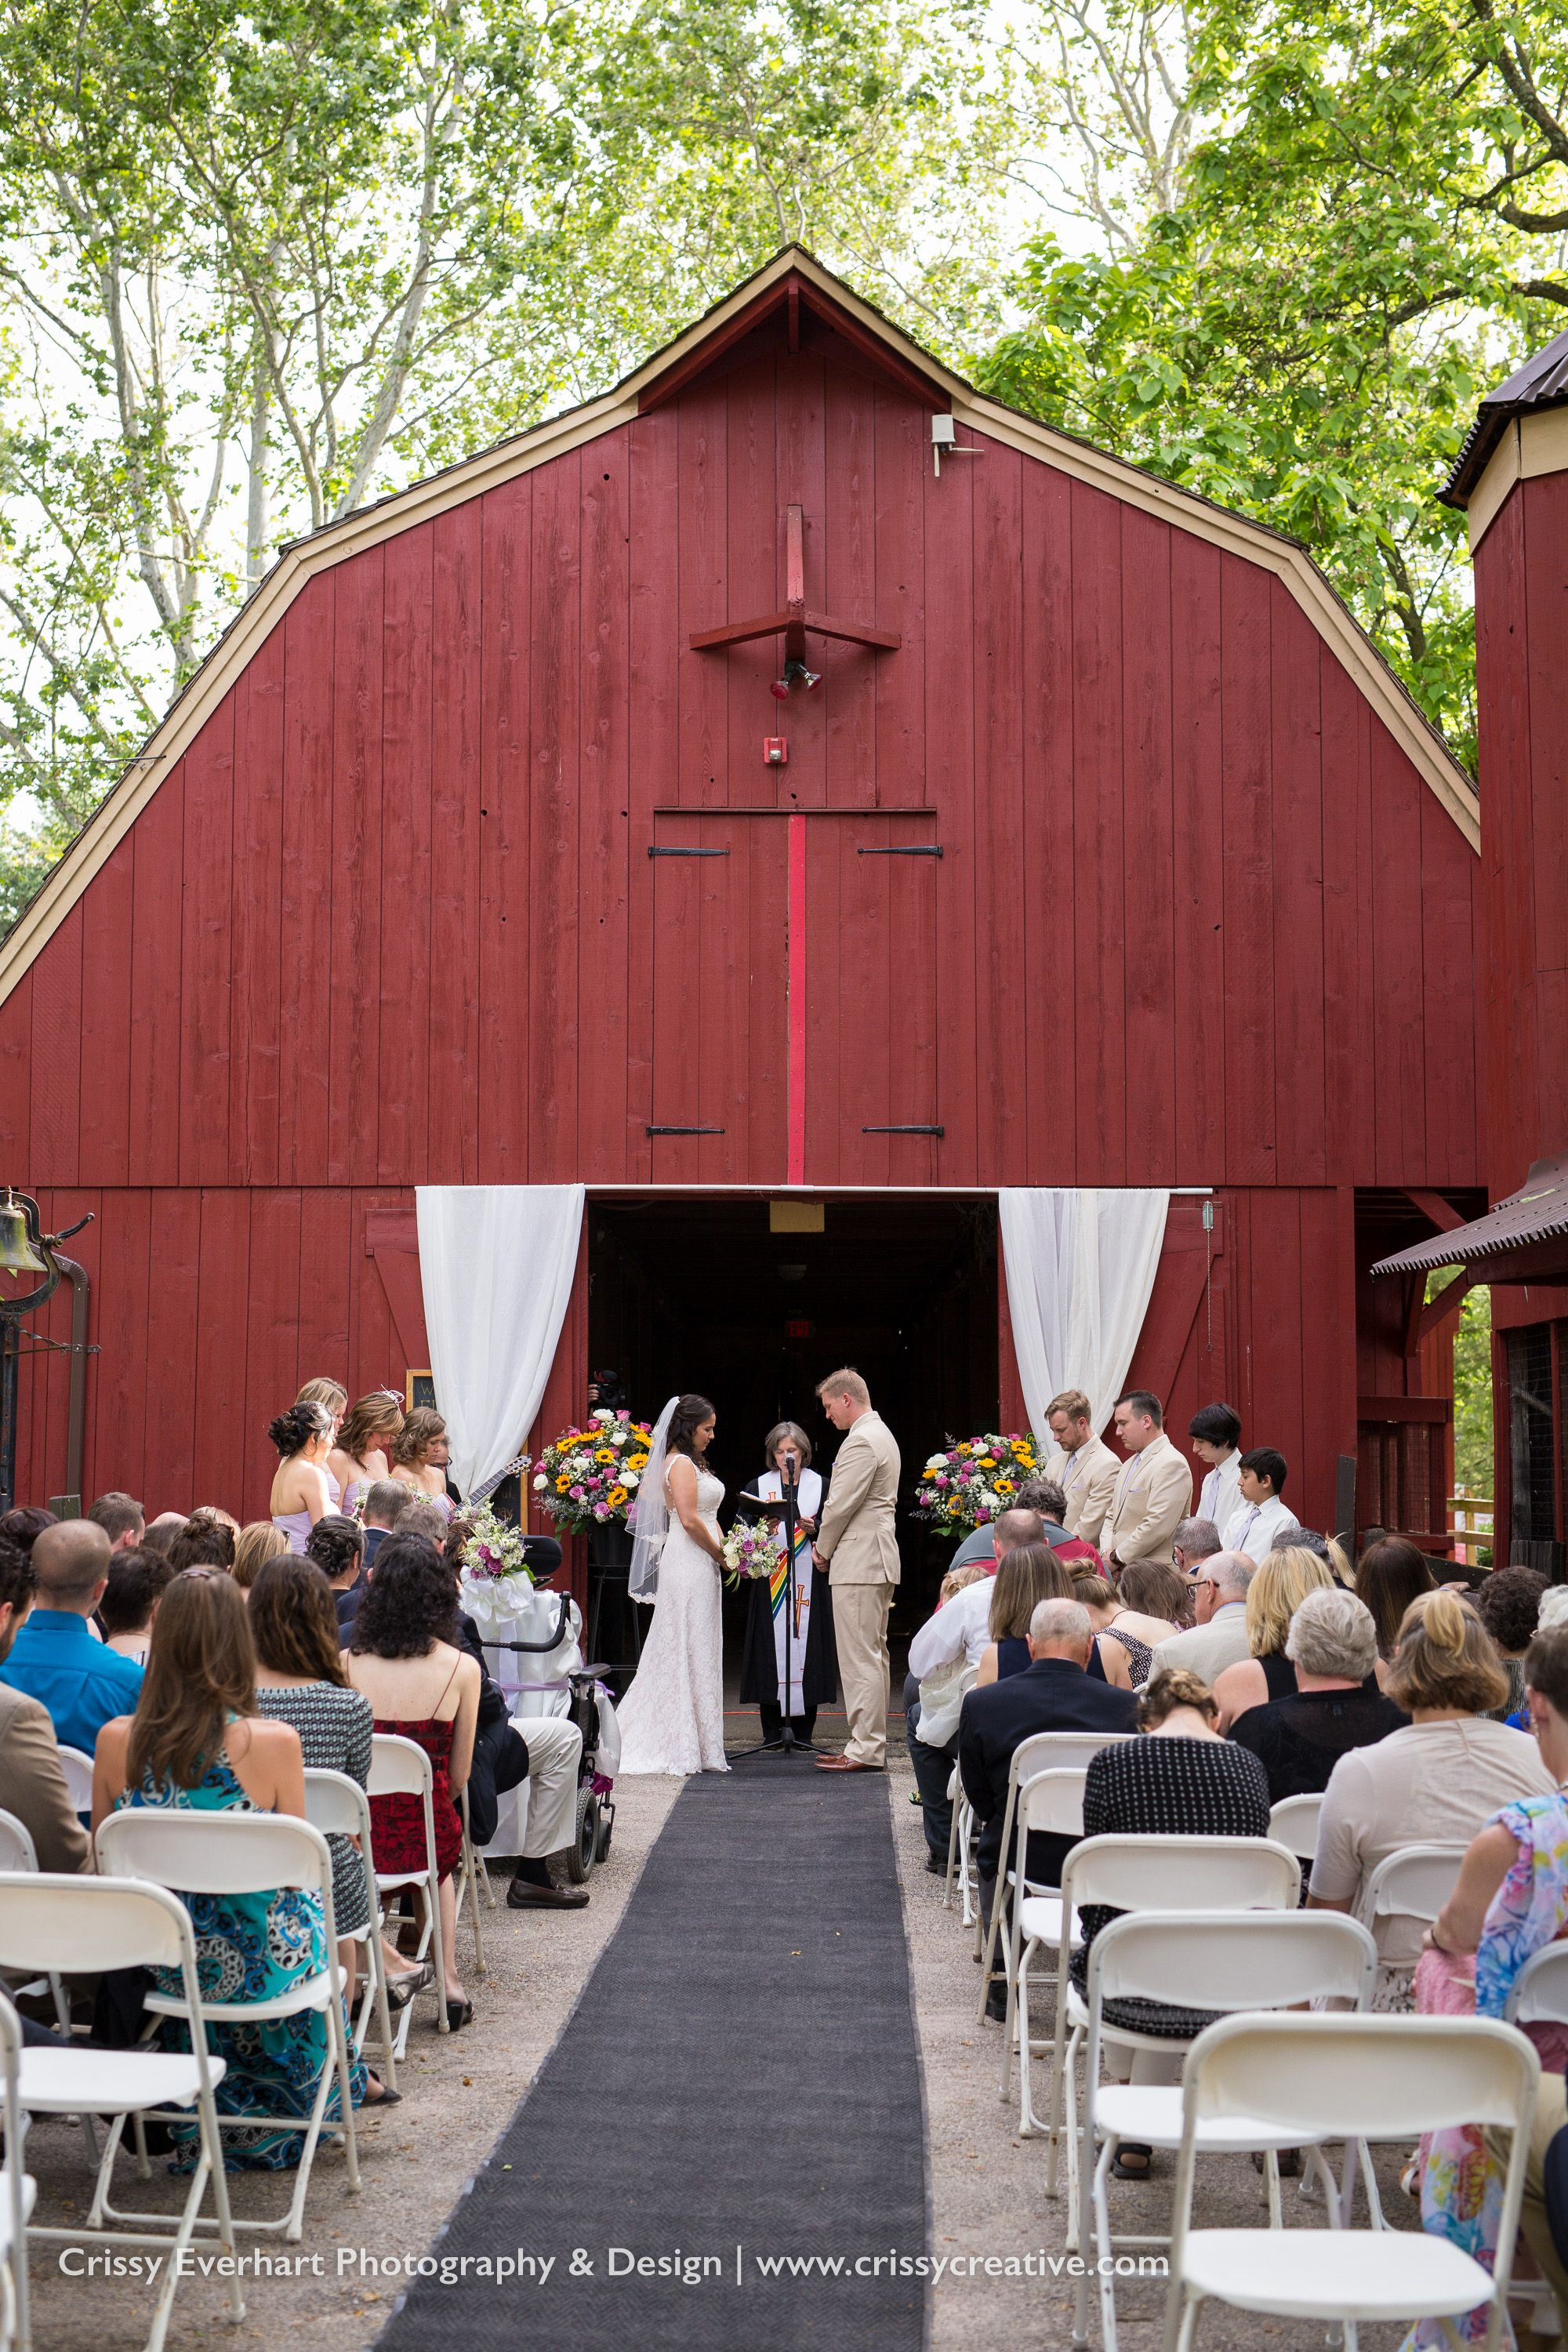 Elmwood Park Zoo Offers Many Different Ceremony Locations To Suit